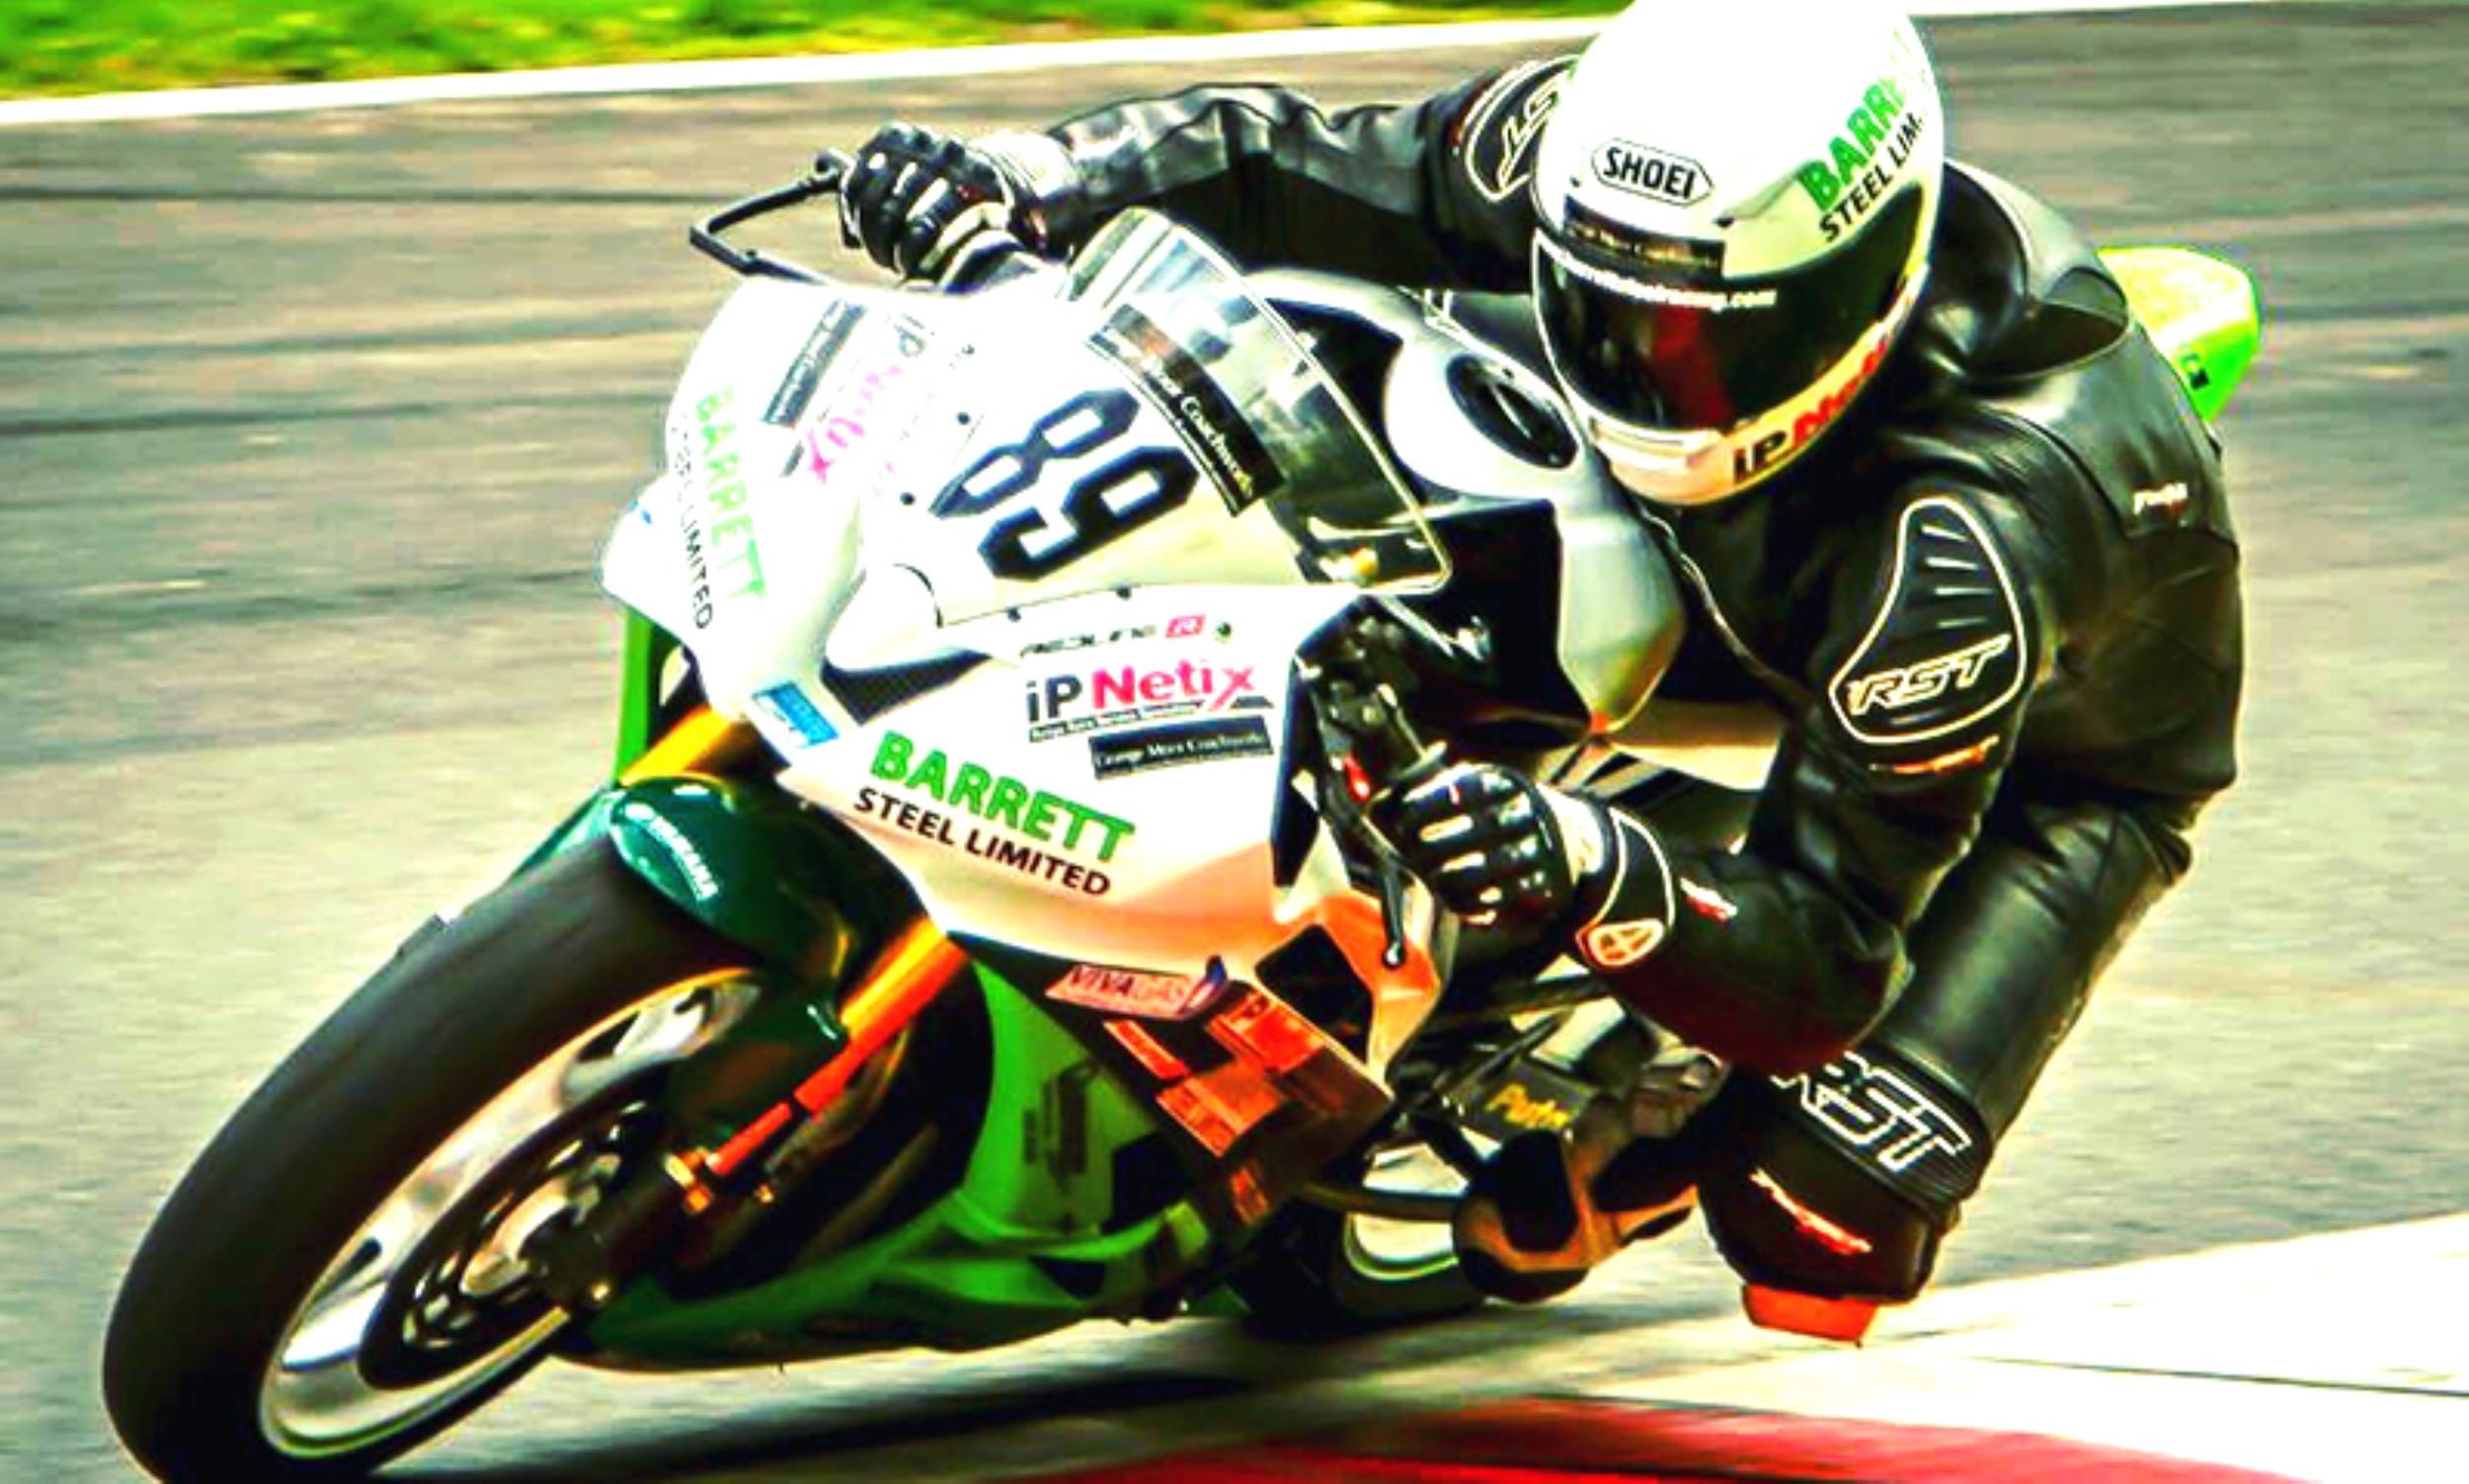 Barrett Steel announce sponsorship of it's own budding sport bike racer